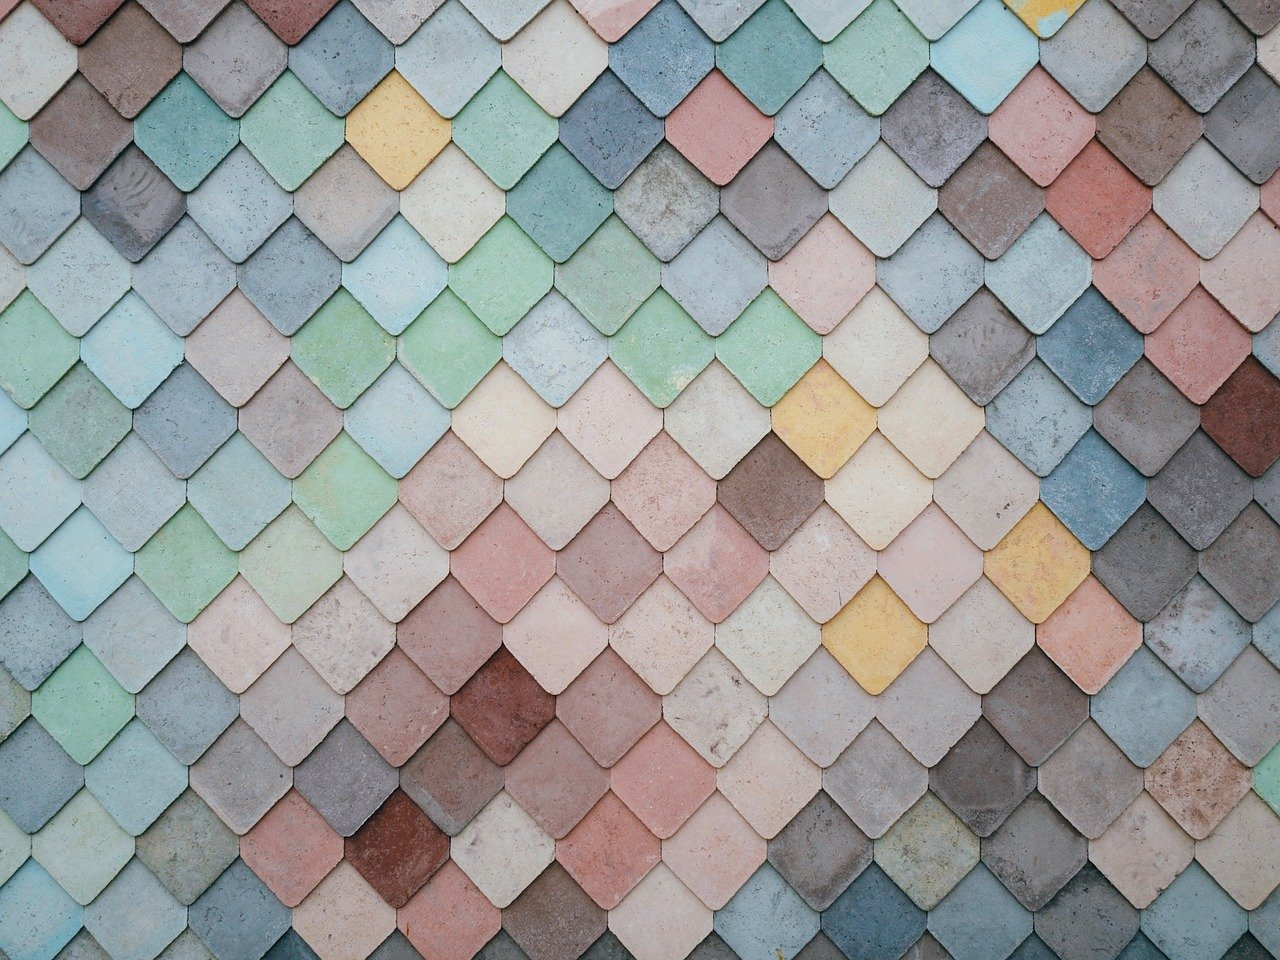 tiles shapes, texture, pattern